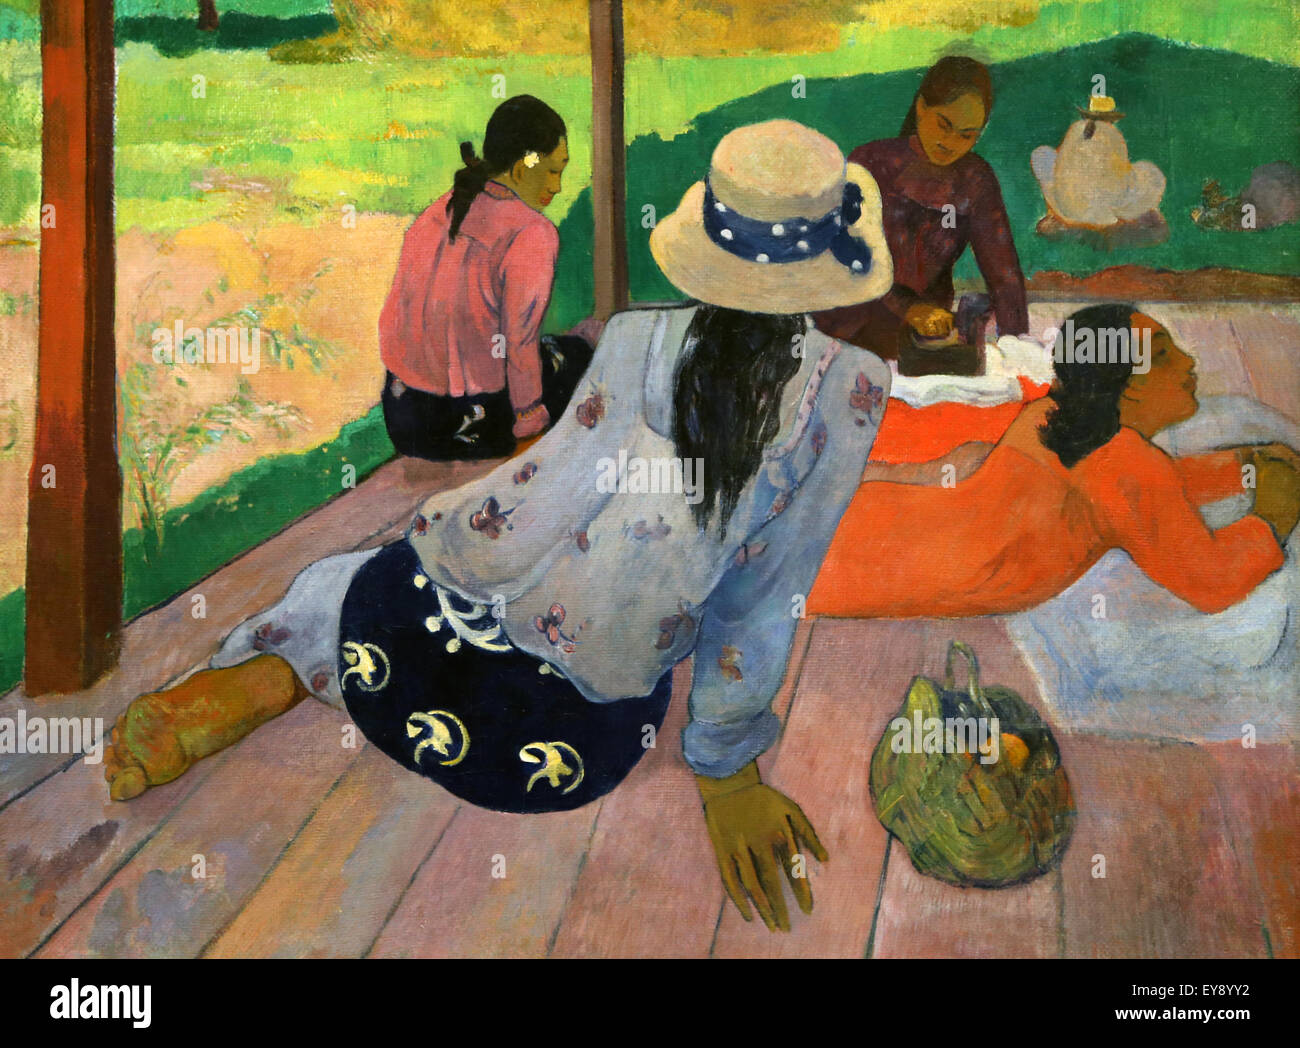 Paul Gauguin (1848-1903). French painter. The Siesta. 1892-94. Oil on canvas. Metropolitan Museum of Art. NY. USA. - Stock Image